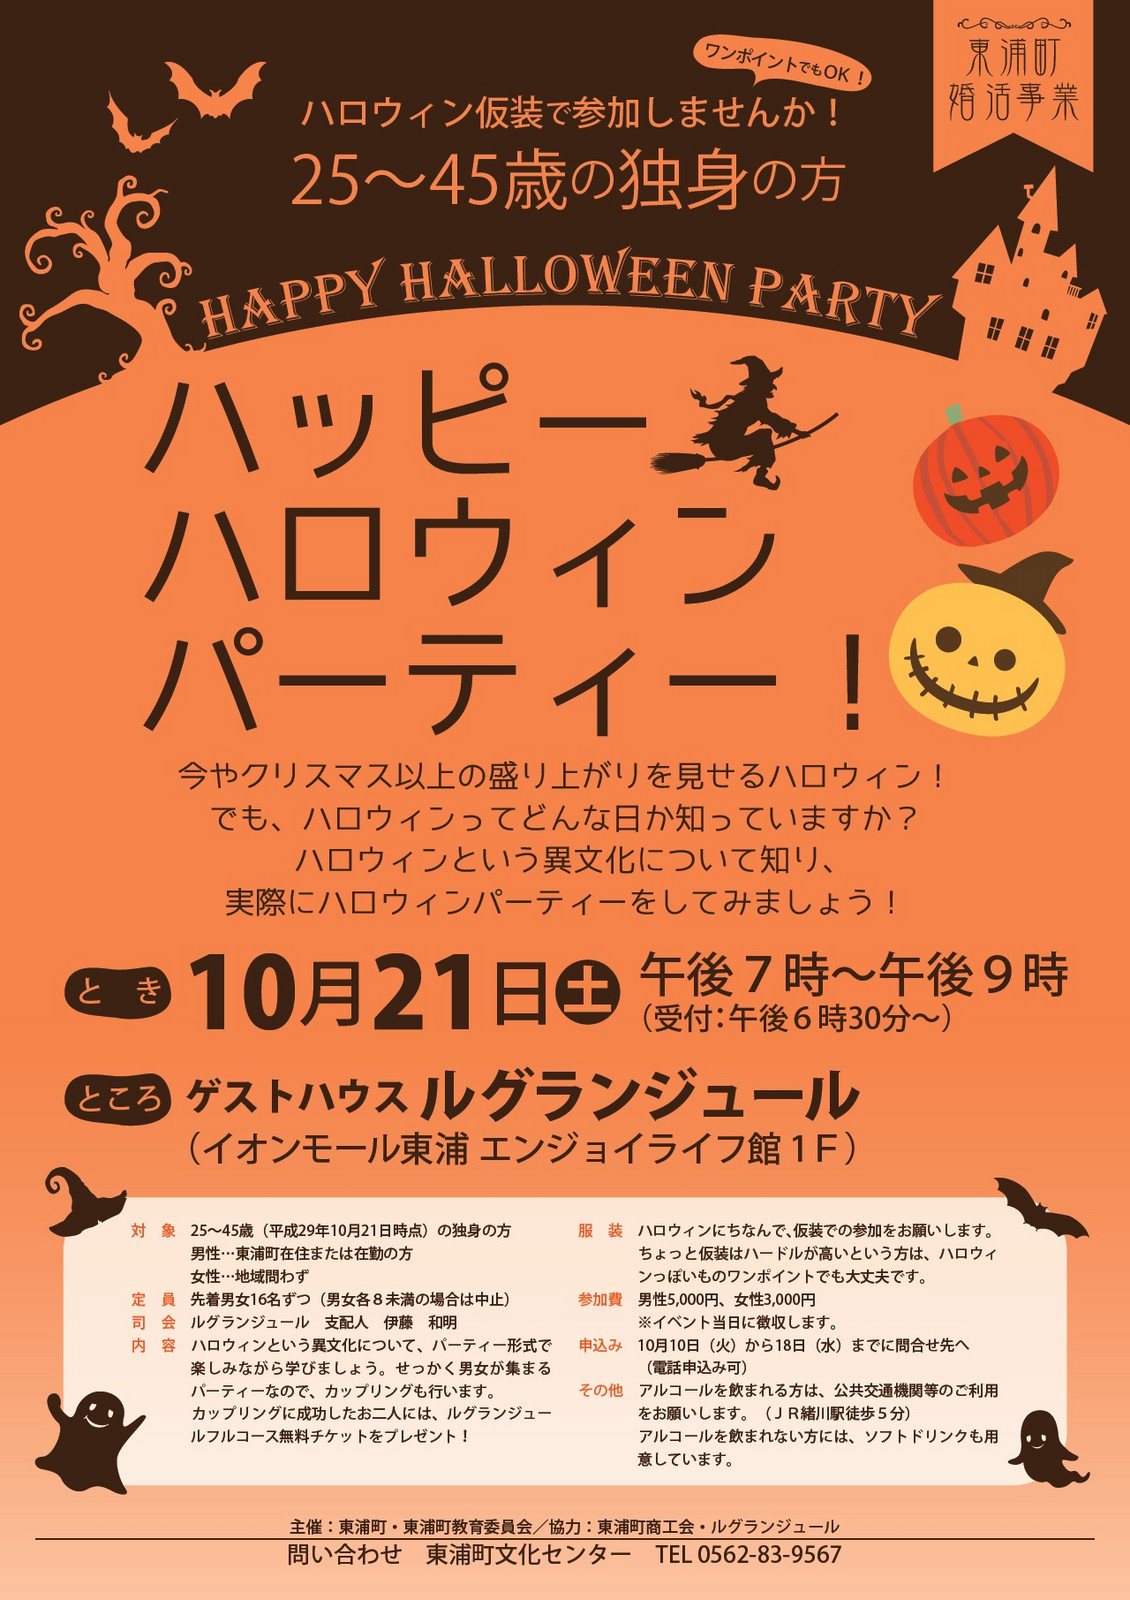 Happyhalloweenparty20171021poster